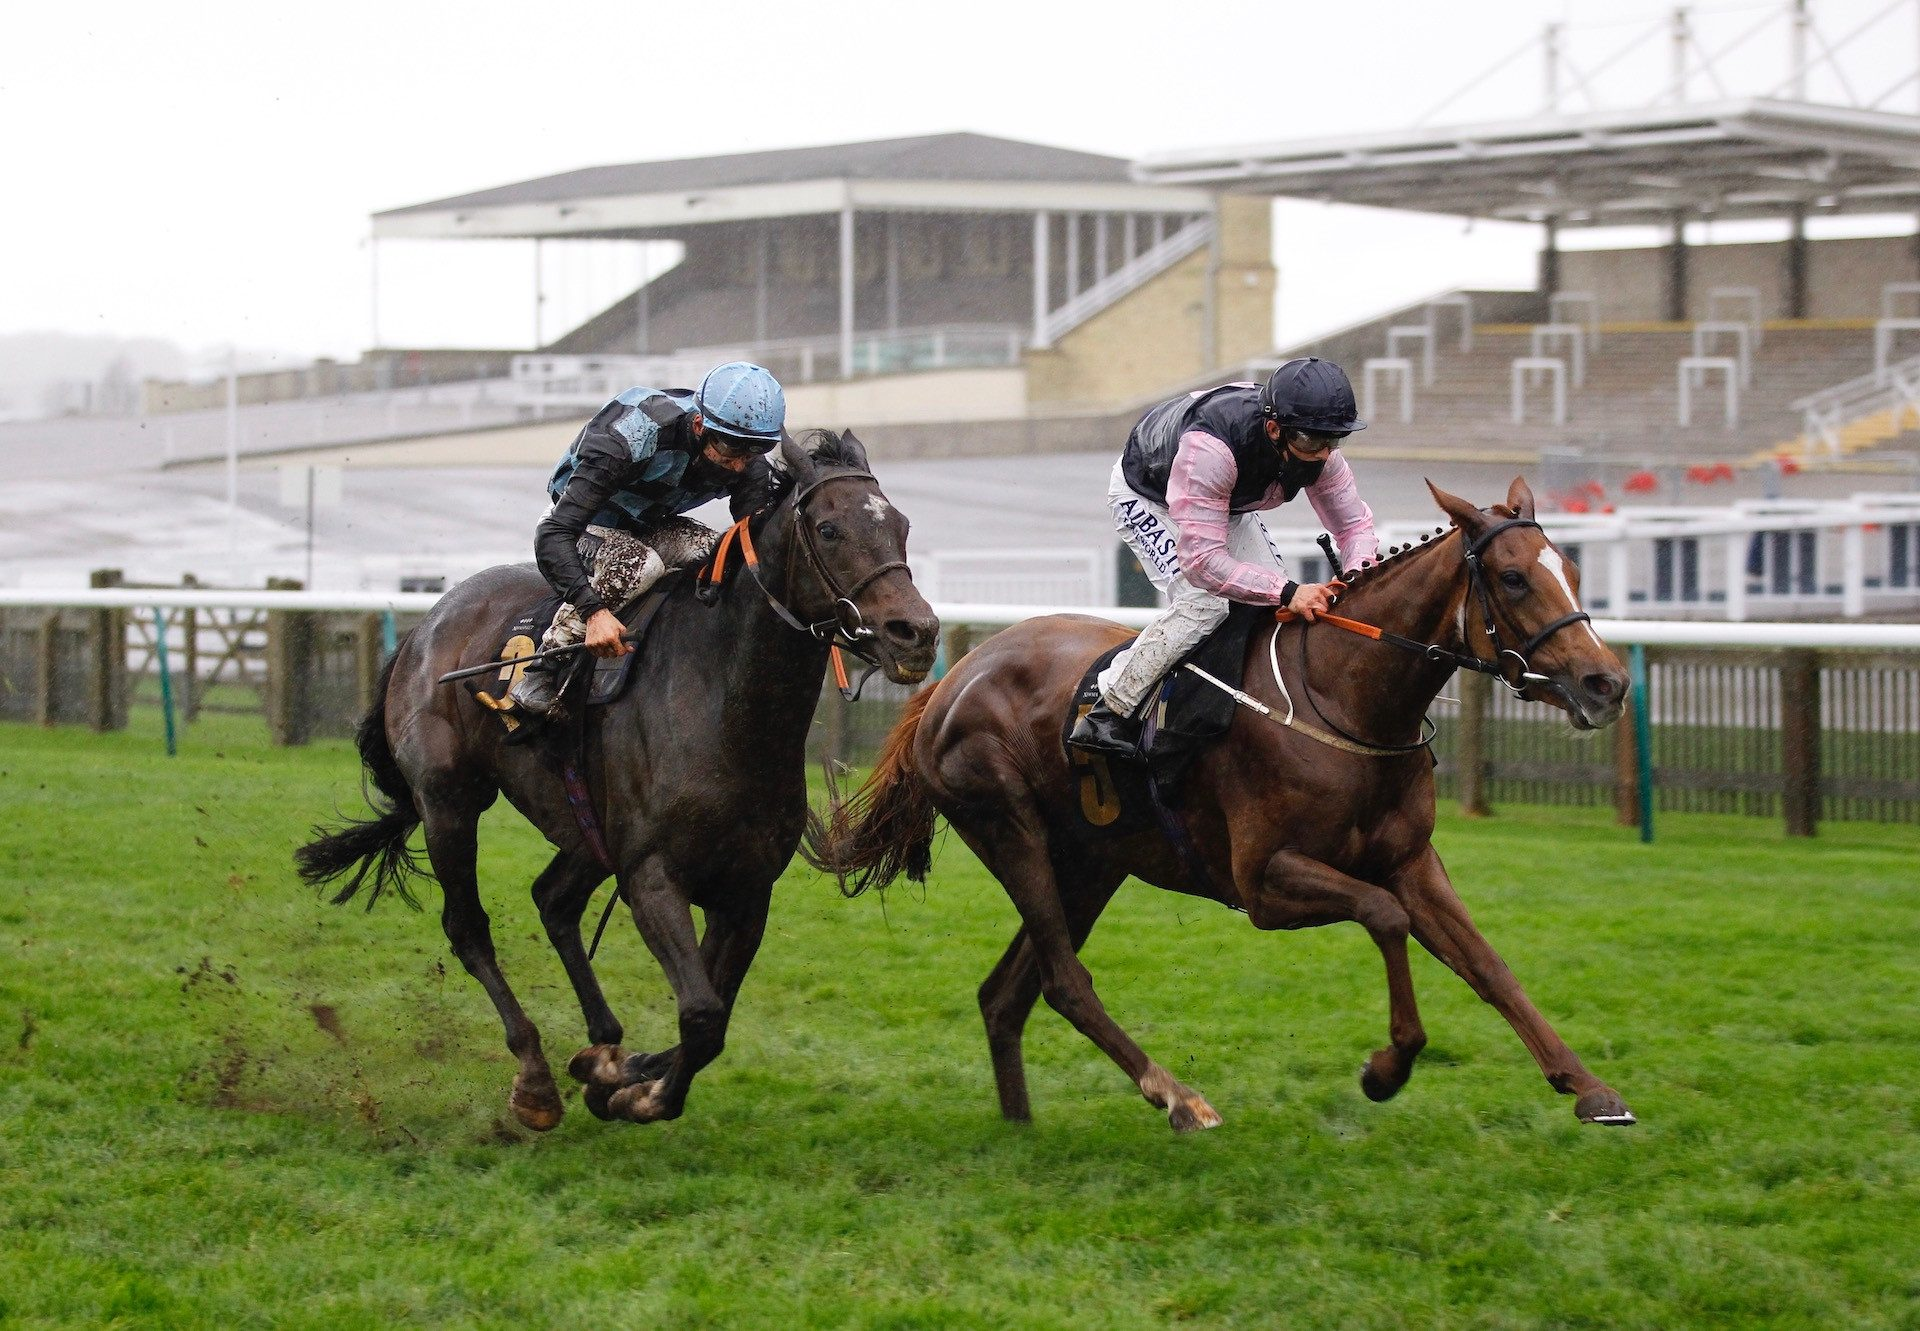 Freyja (Gleneagles) Wins The Listed James Seymour Stakes at Newmarket